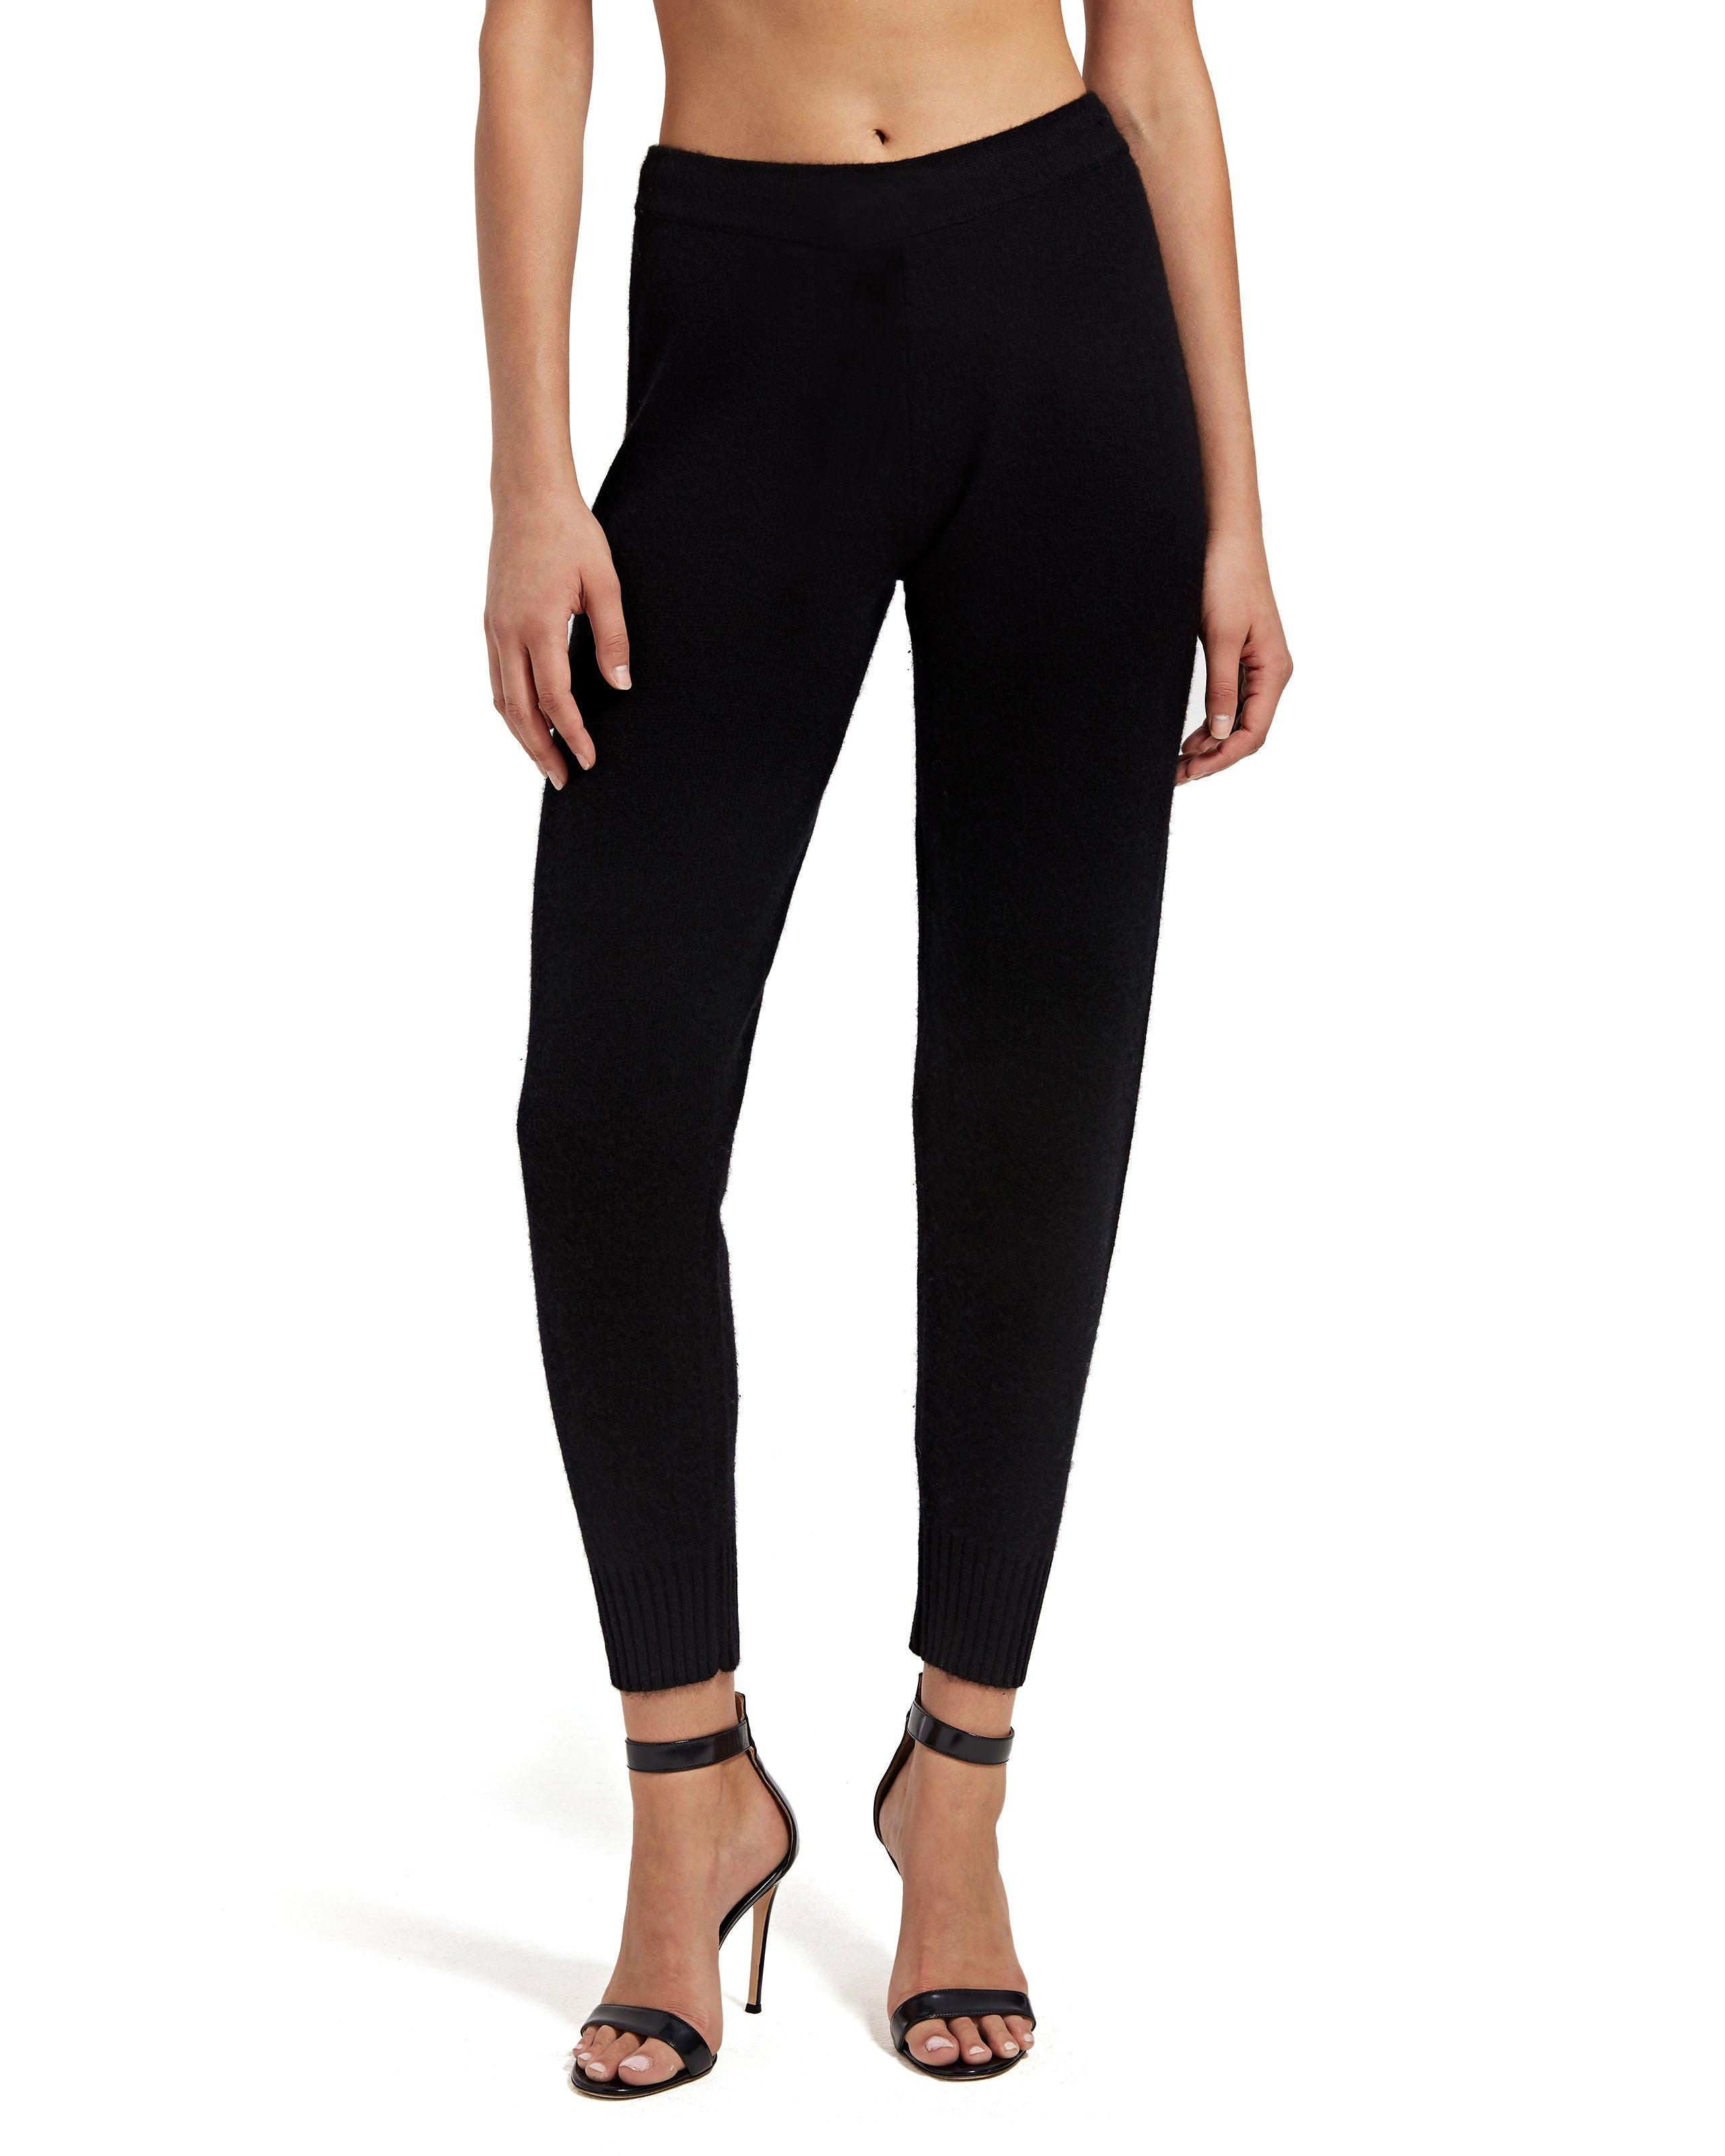 Black Cashmere Blend Sweater Pants - Women's Luxe Loungewear by ATM Anthony Thomas Melillo